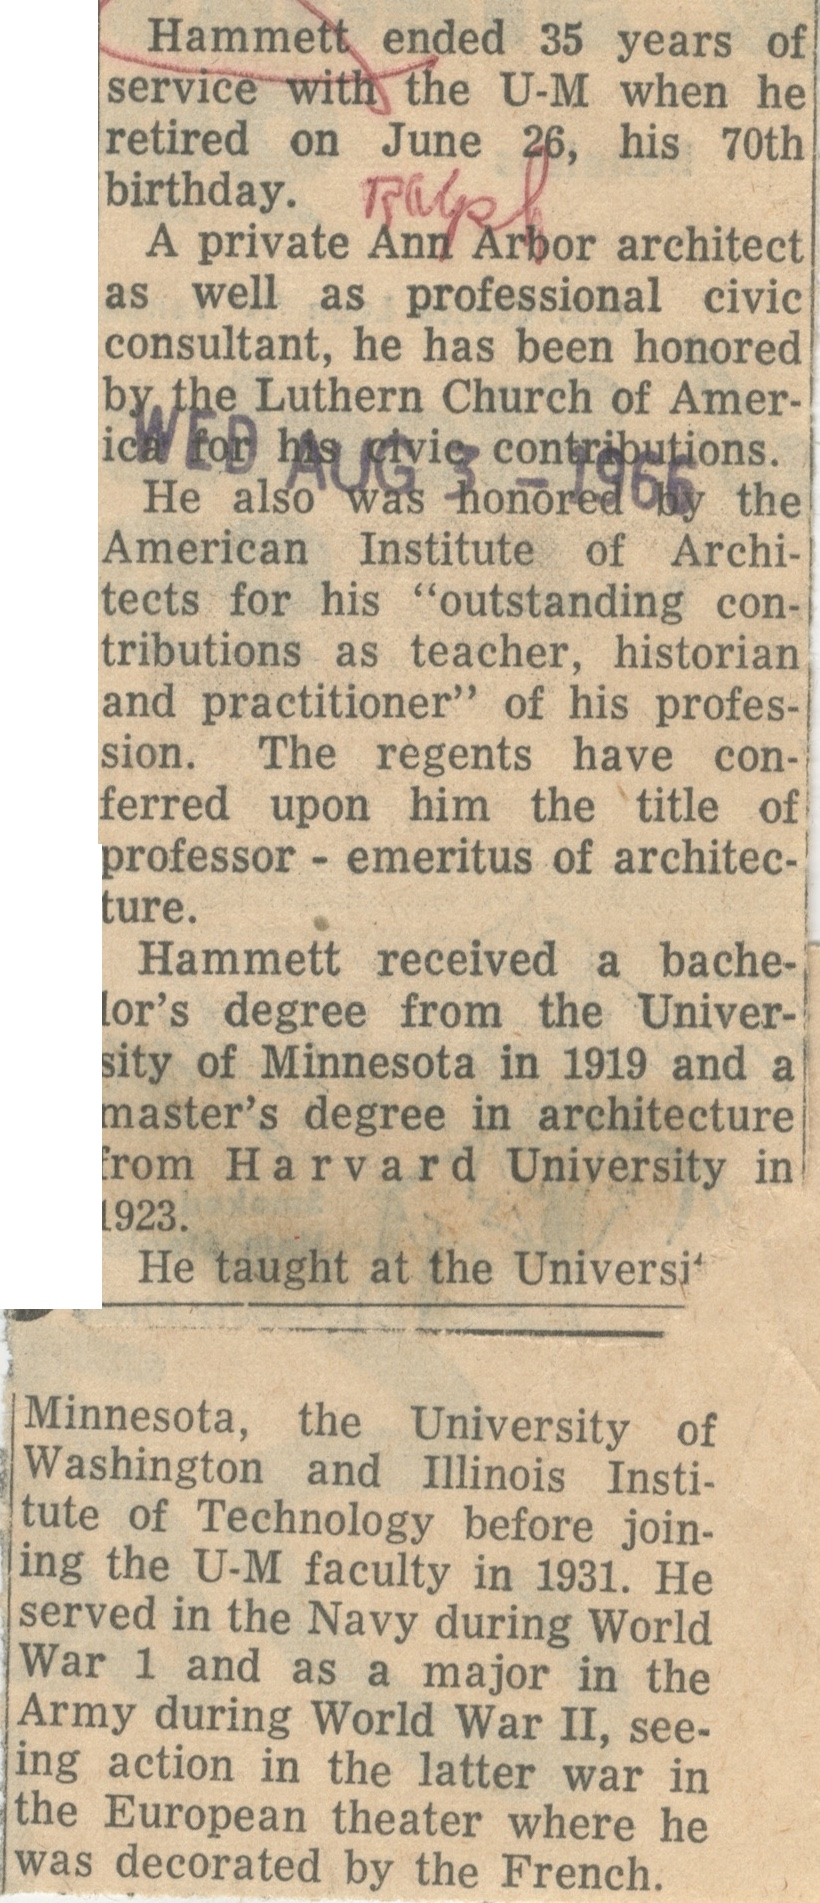 Hammett Ended 35 Years Of Service With U-M. image